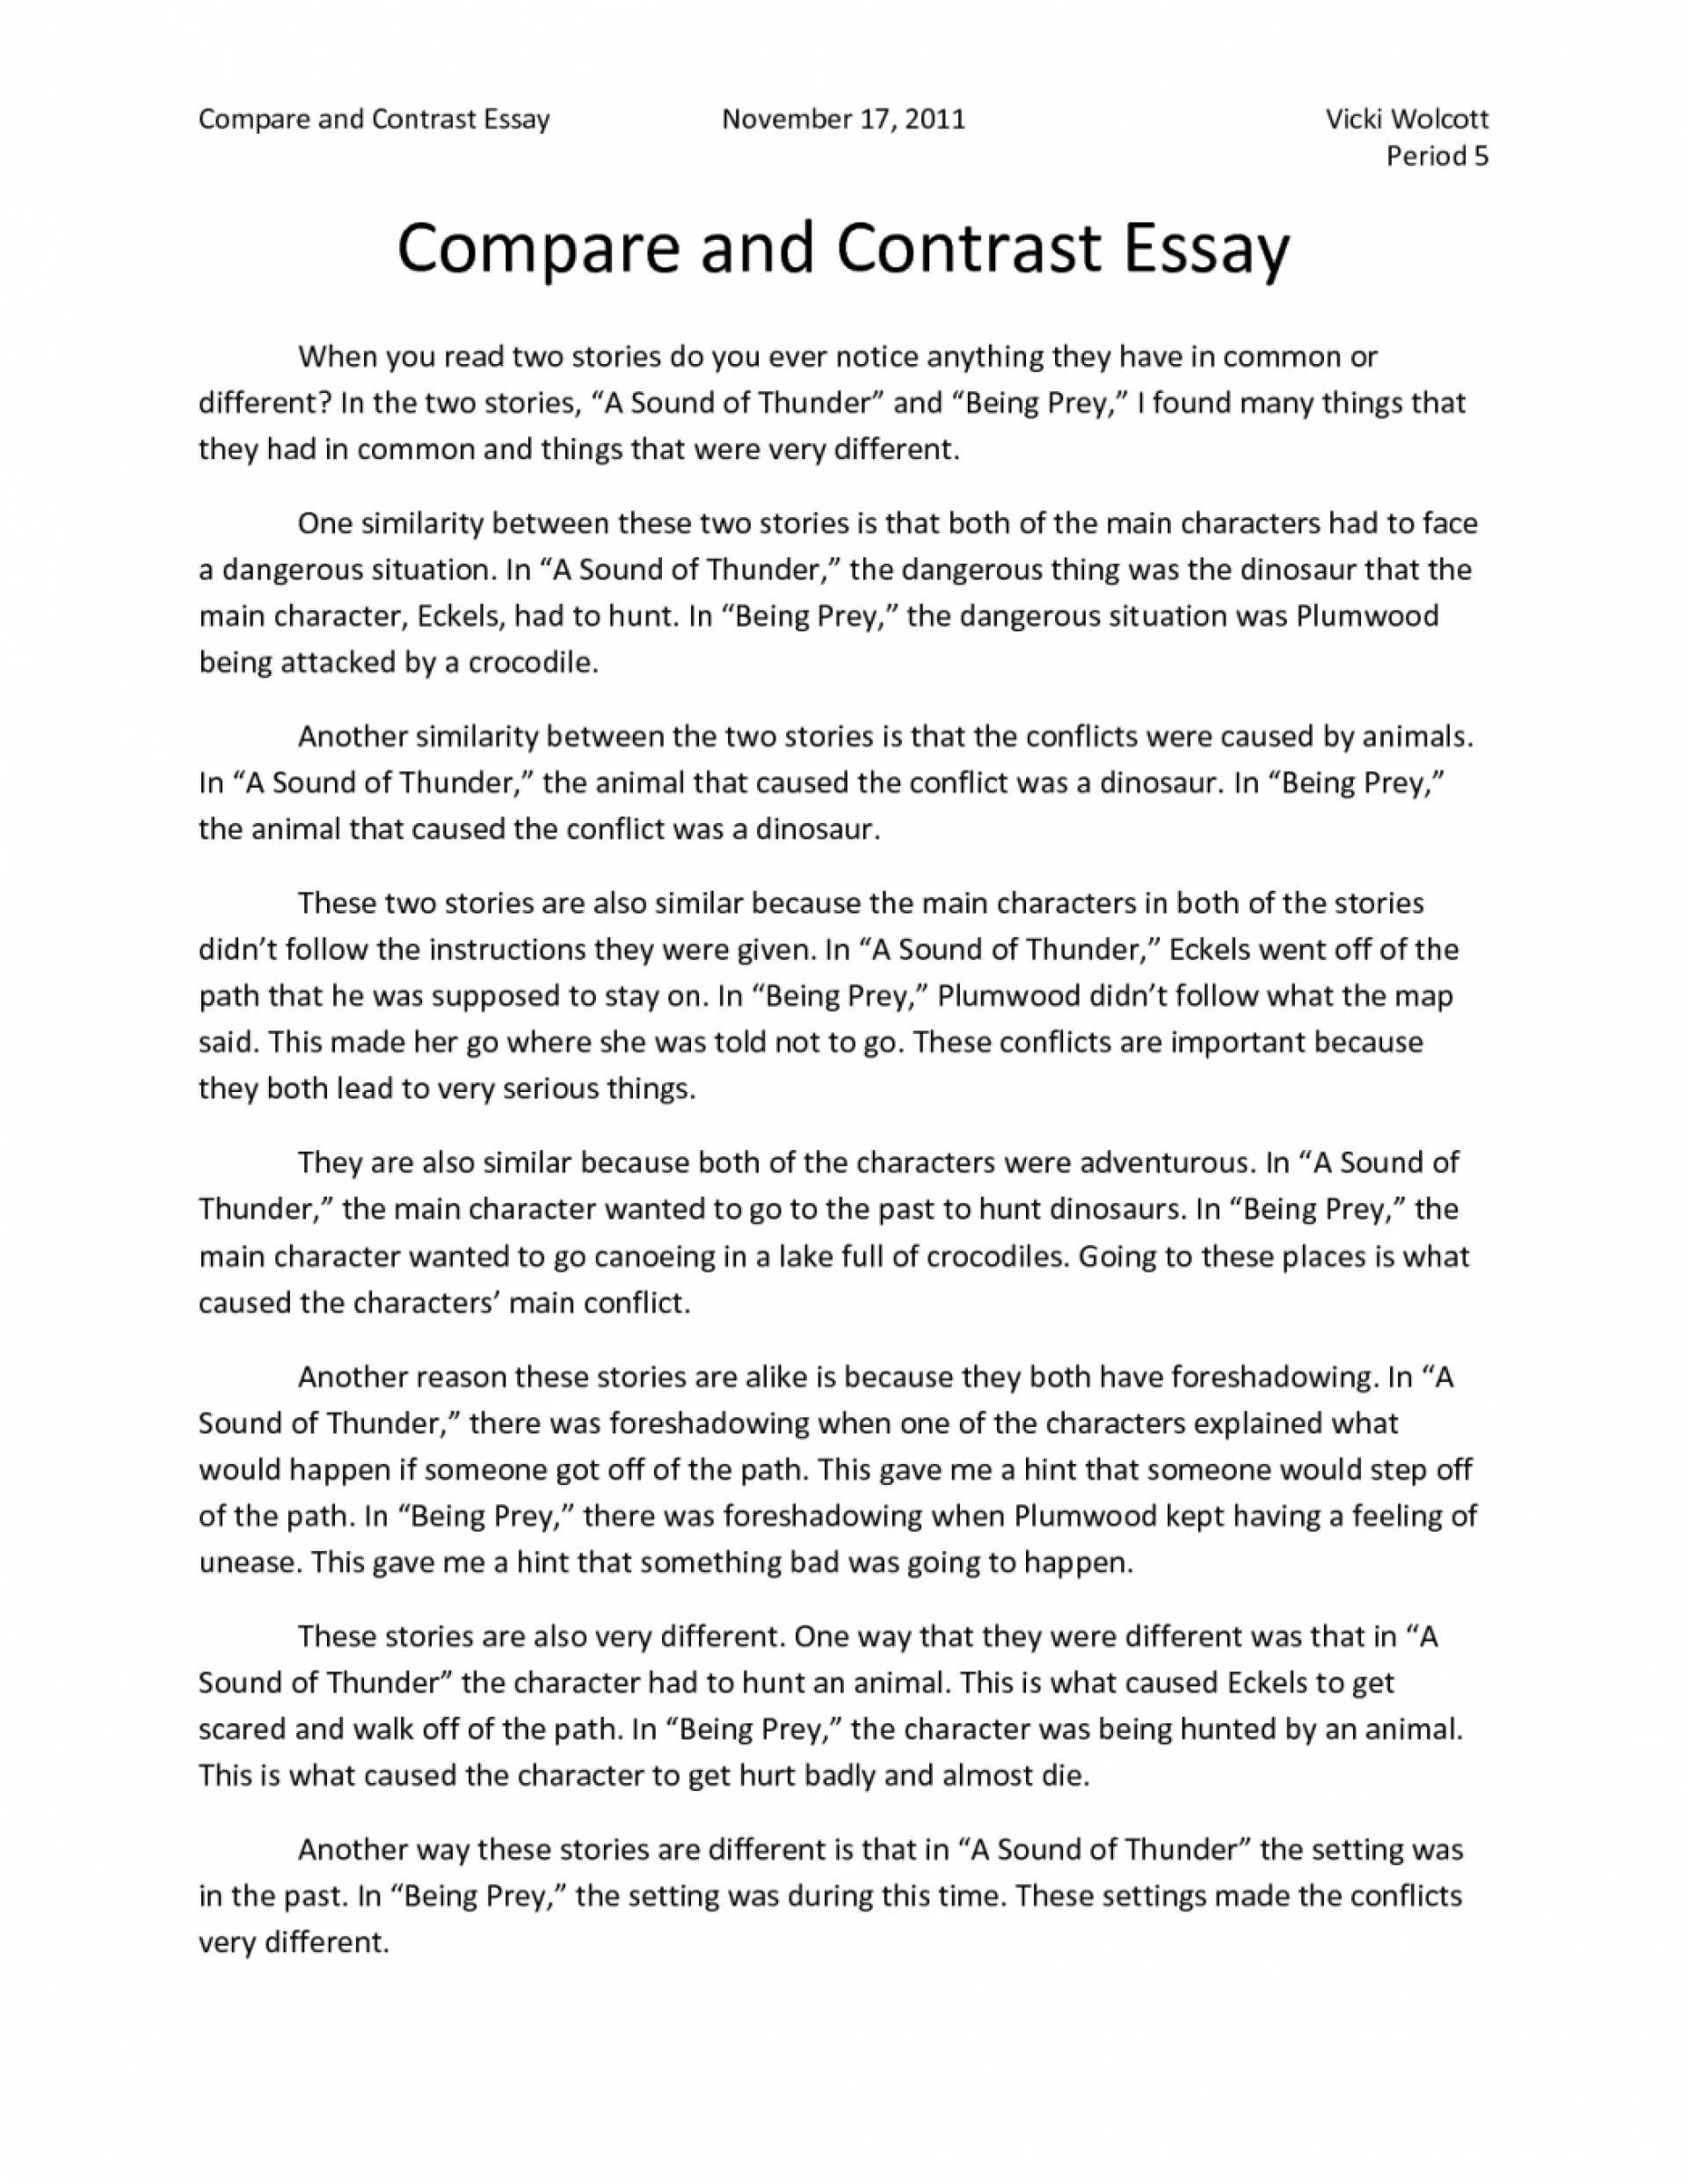 004 Argumentative Essay Topic Ideas Causal Topics Compare And Contrast For Argument Or Position 1048x1356 Surprising Middle School College 1920